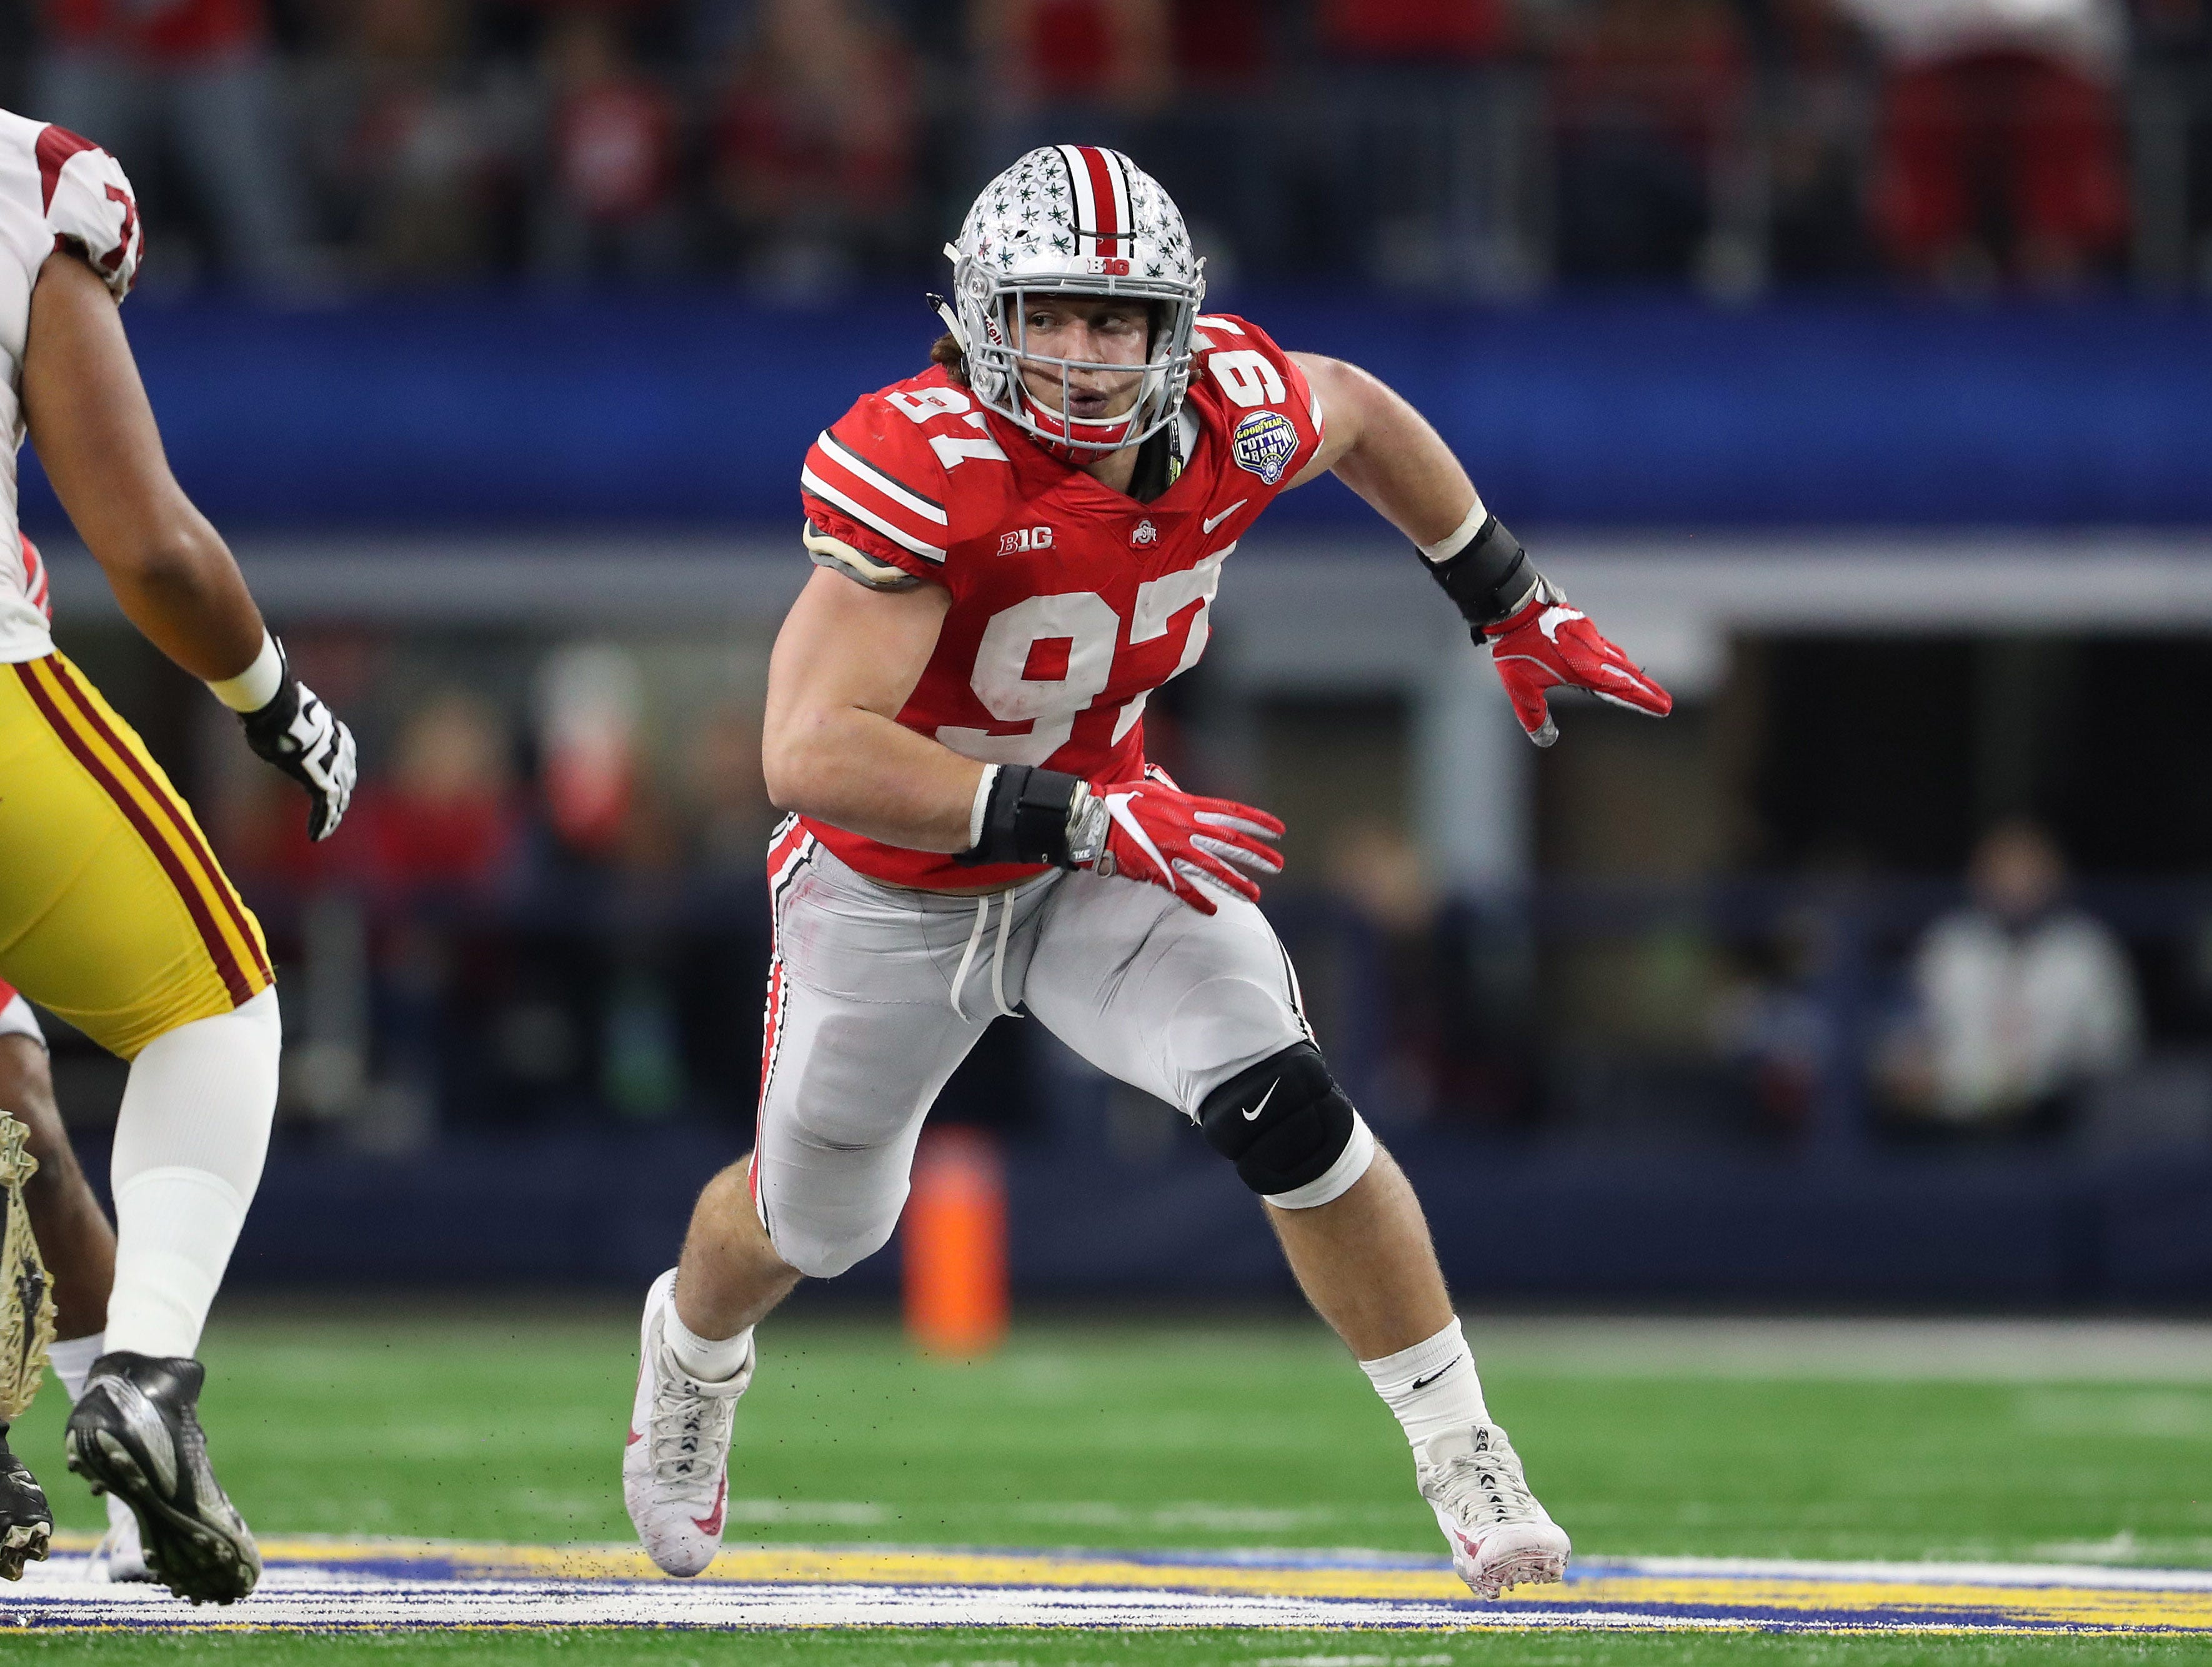 Ohio State Buckeyes defensive end Nick Bosa (97) rushes the passer against the Southern California Trojans in the 2017 Cotton Bowl at AT&T Stadium.